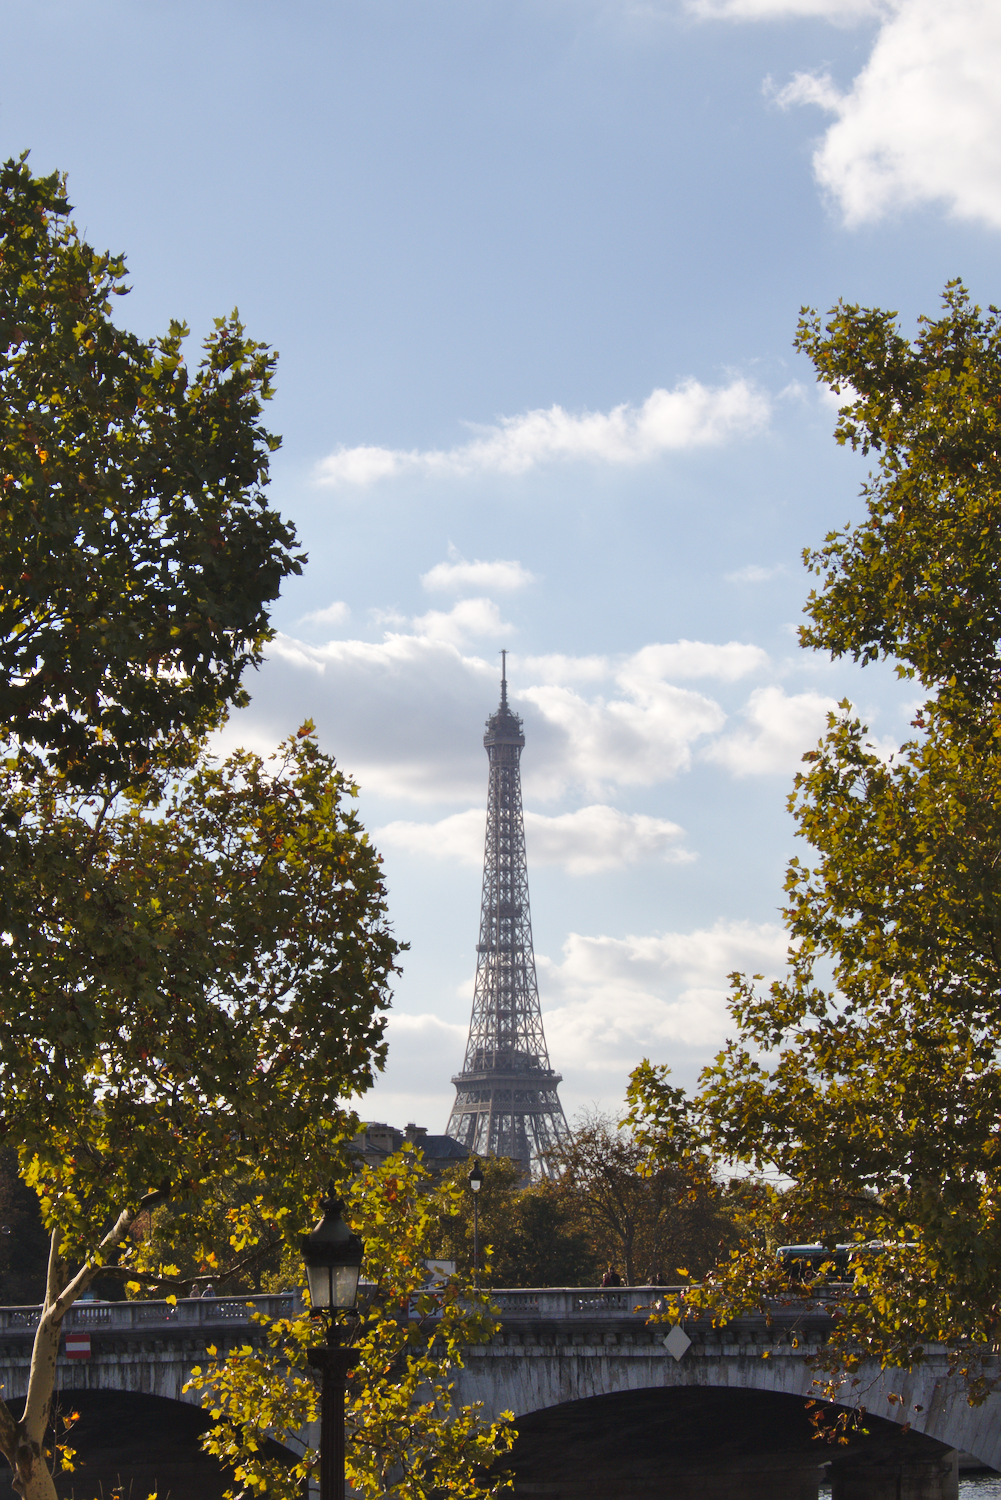 Photo of the Eiffel Tower seen through trees